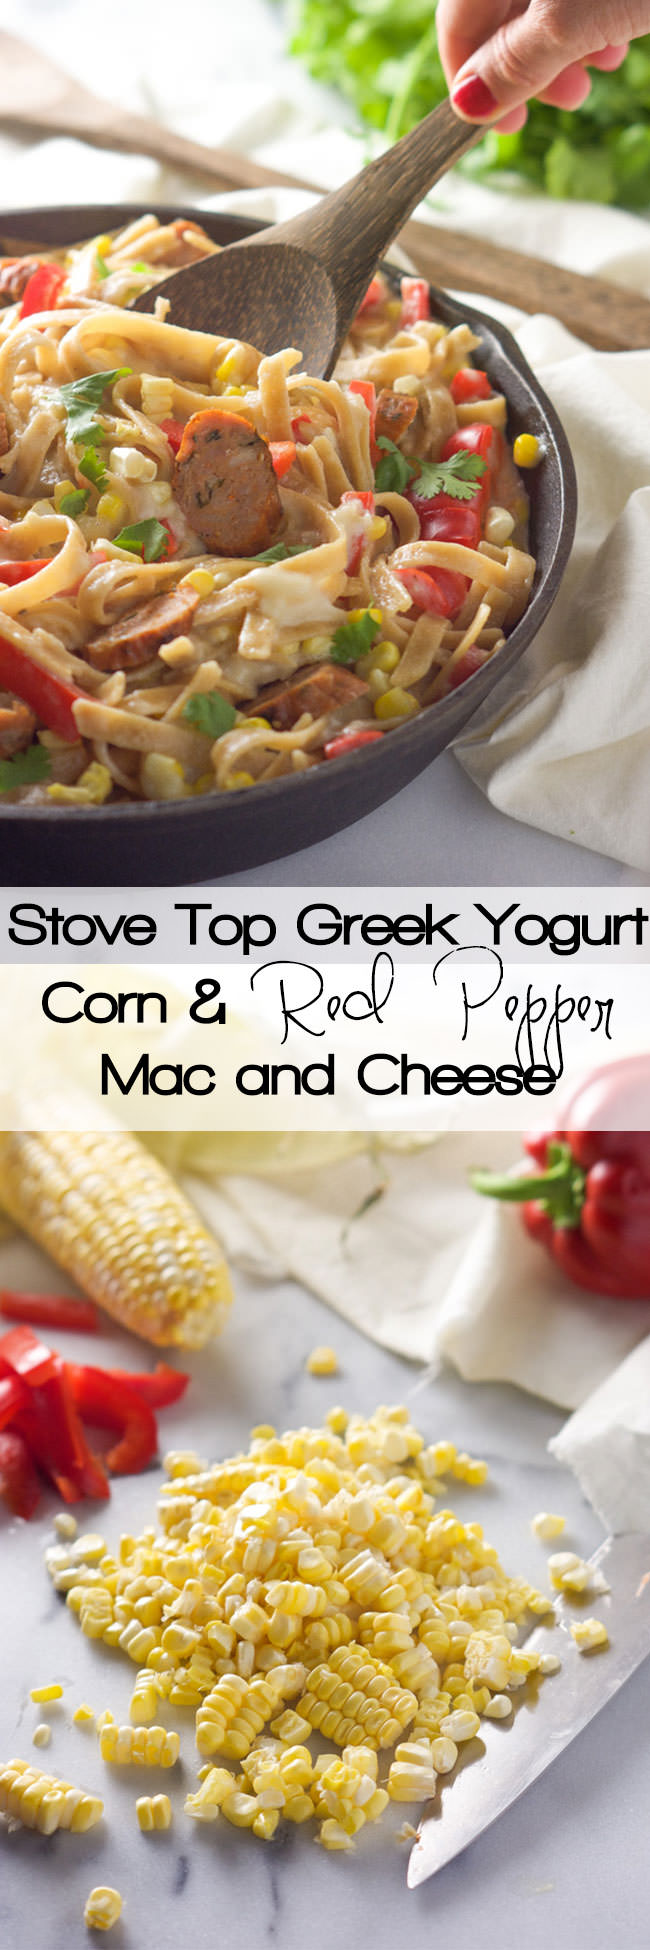 A simple and comforting bowl of Greek Yogurt Corn and Red Pepper Mac and Cheese that is made on the stove top for a quick and summer-filled dinner!